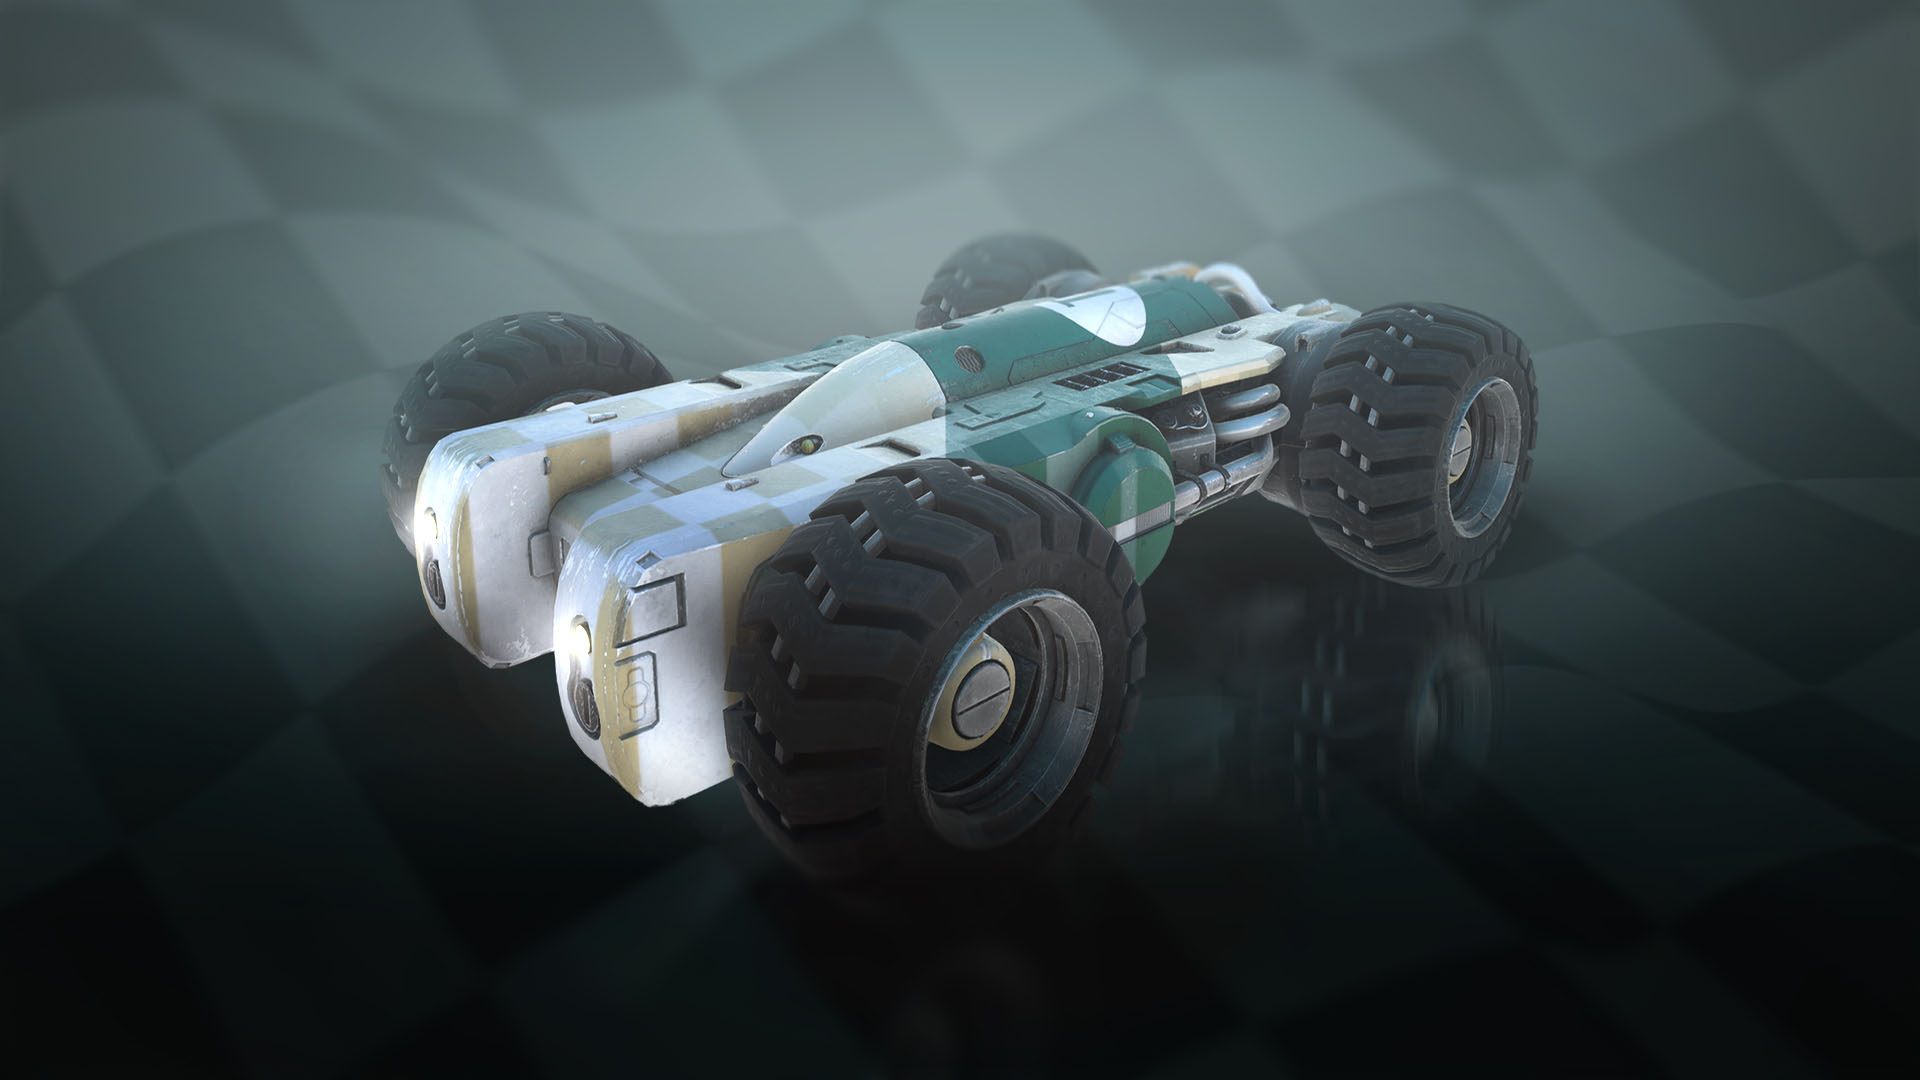 Juggernaut - Half missile, half car, the Juggernaut is a beast - but can be hard to handle.